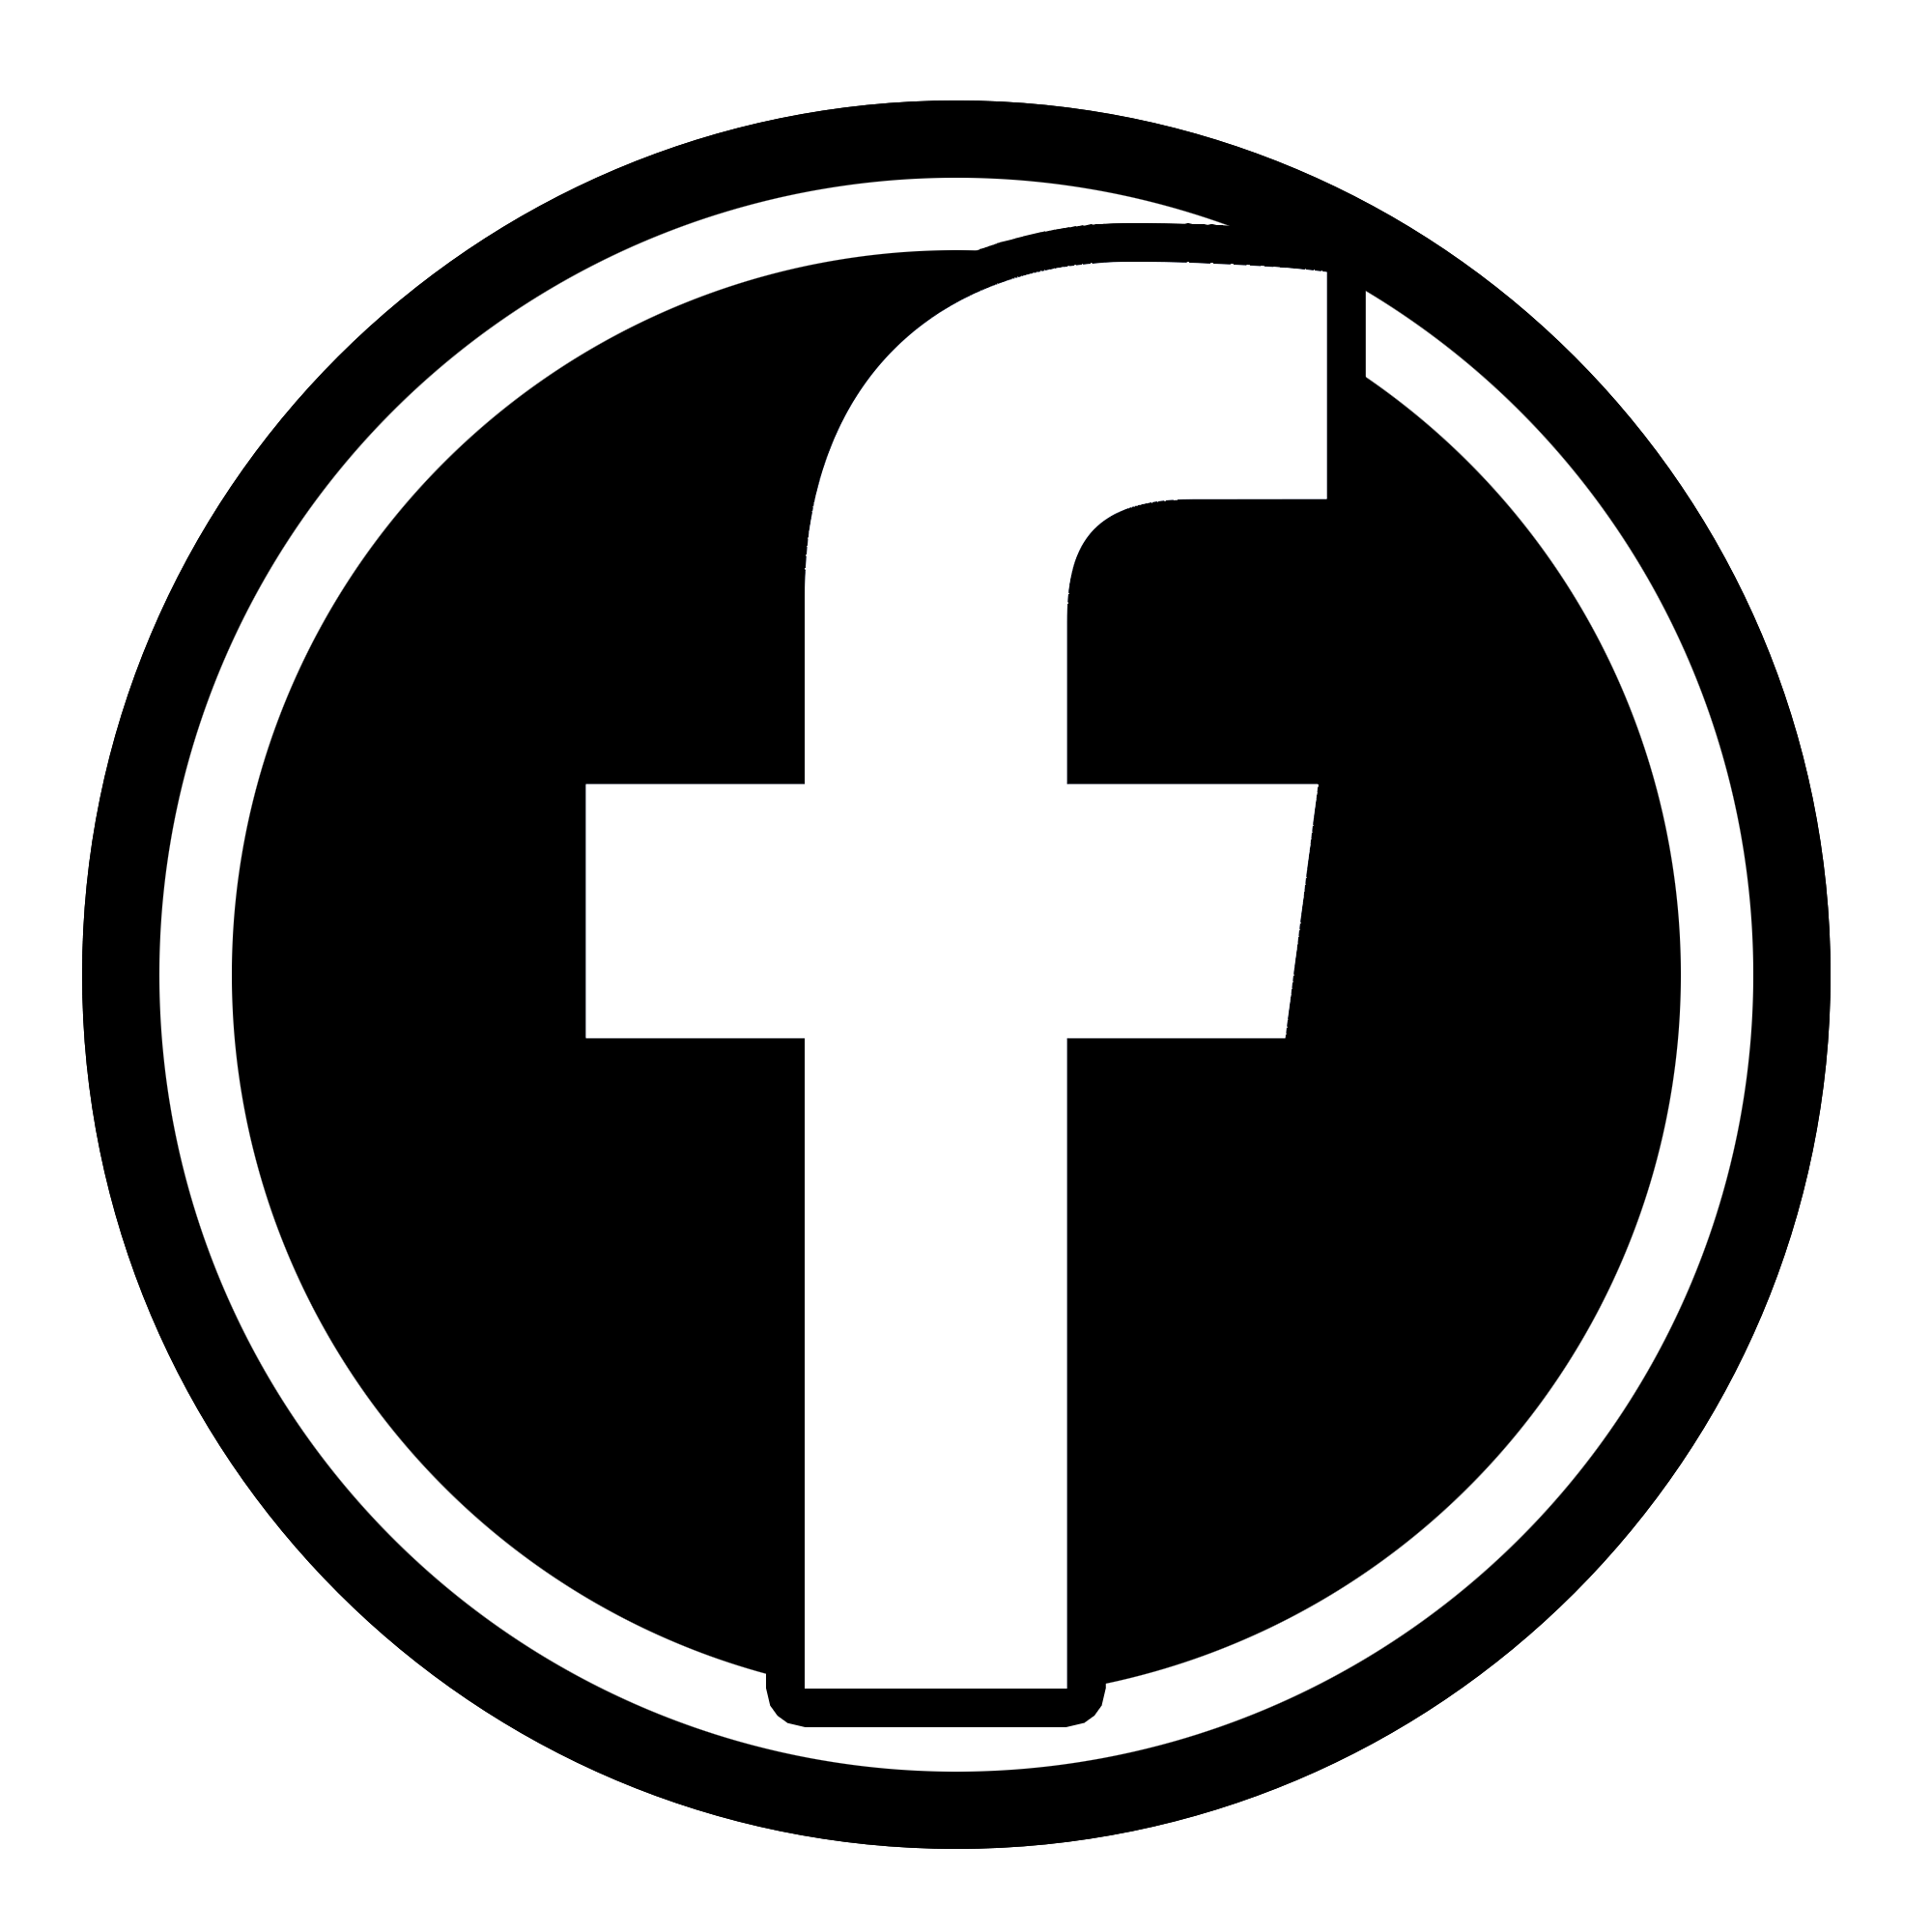 Facebook instagram twitter icons png. Icon images free and